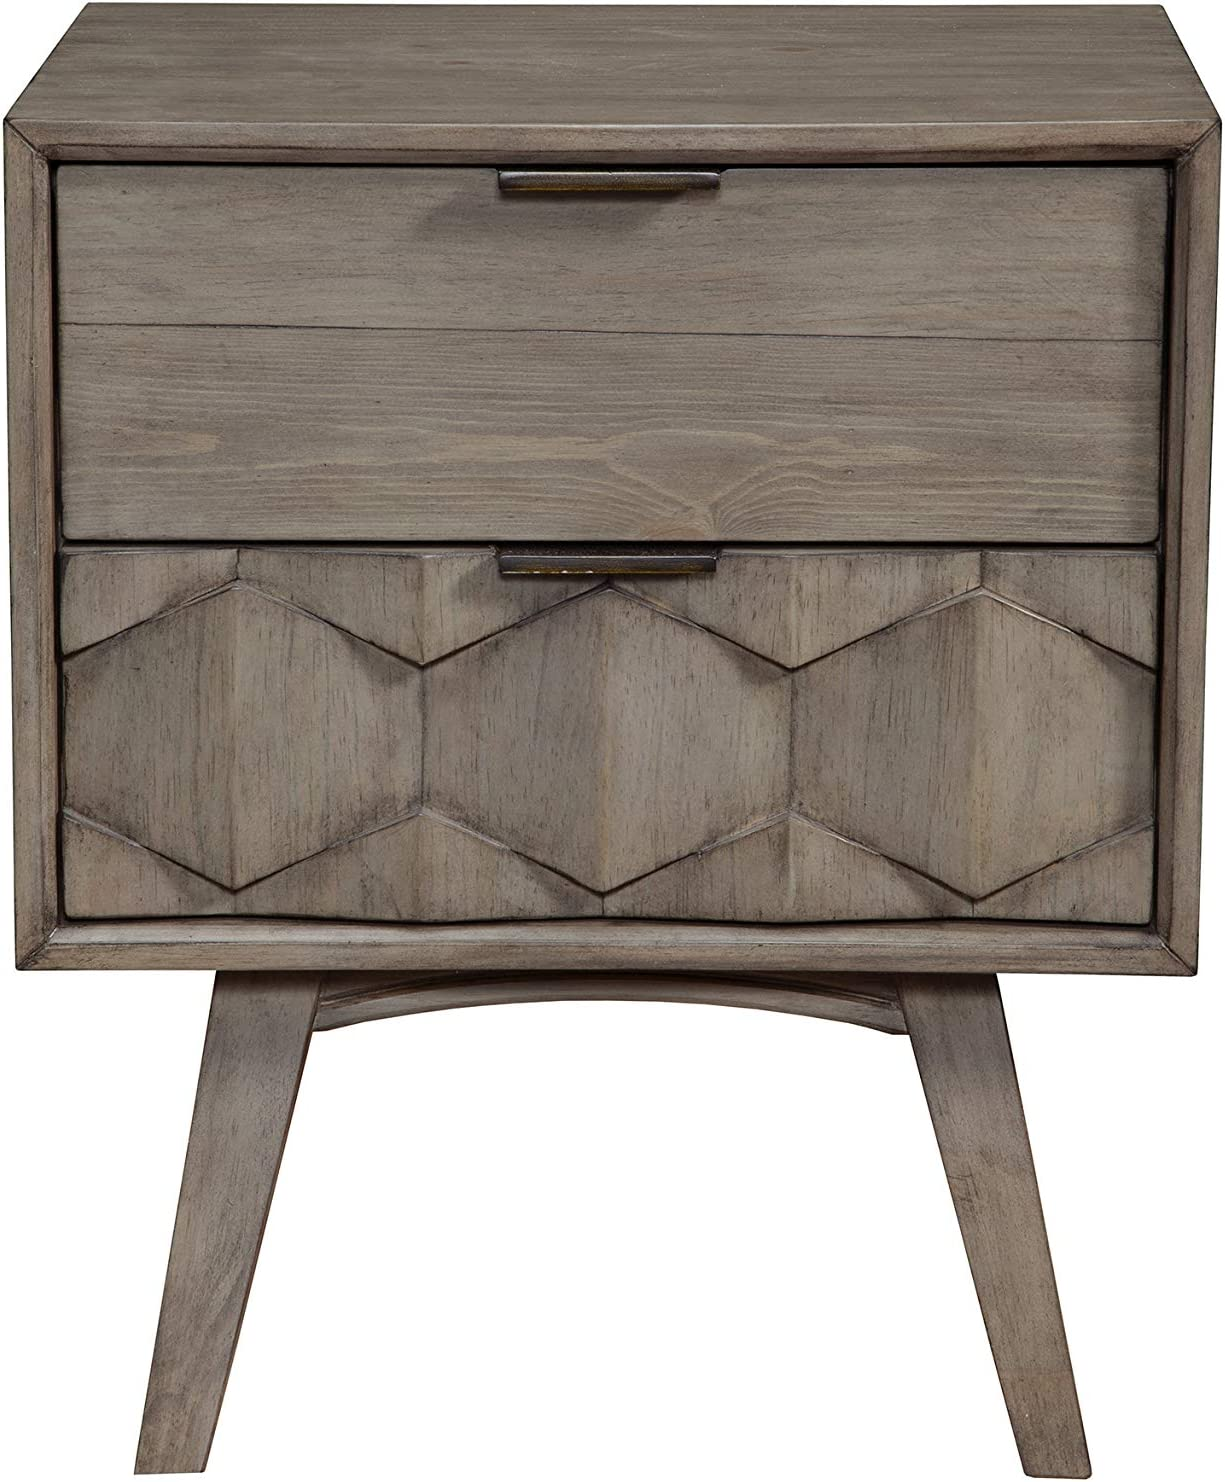 Alpine Furniture Shimmer Wood 2 Drawer Nightstand in Antique Gray